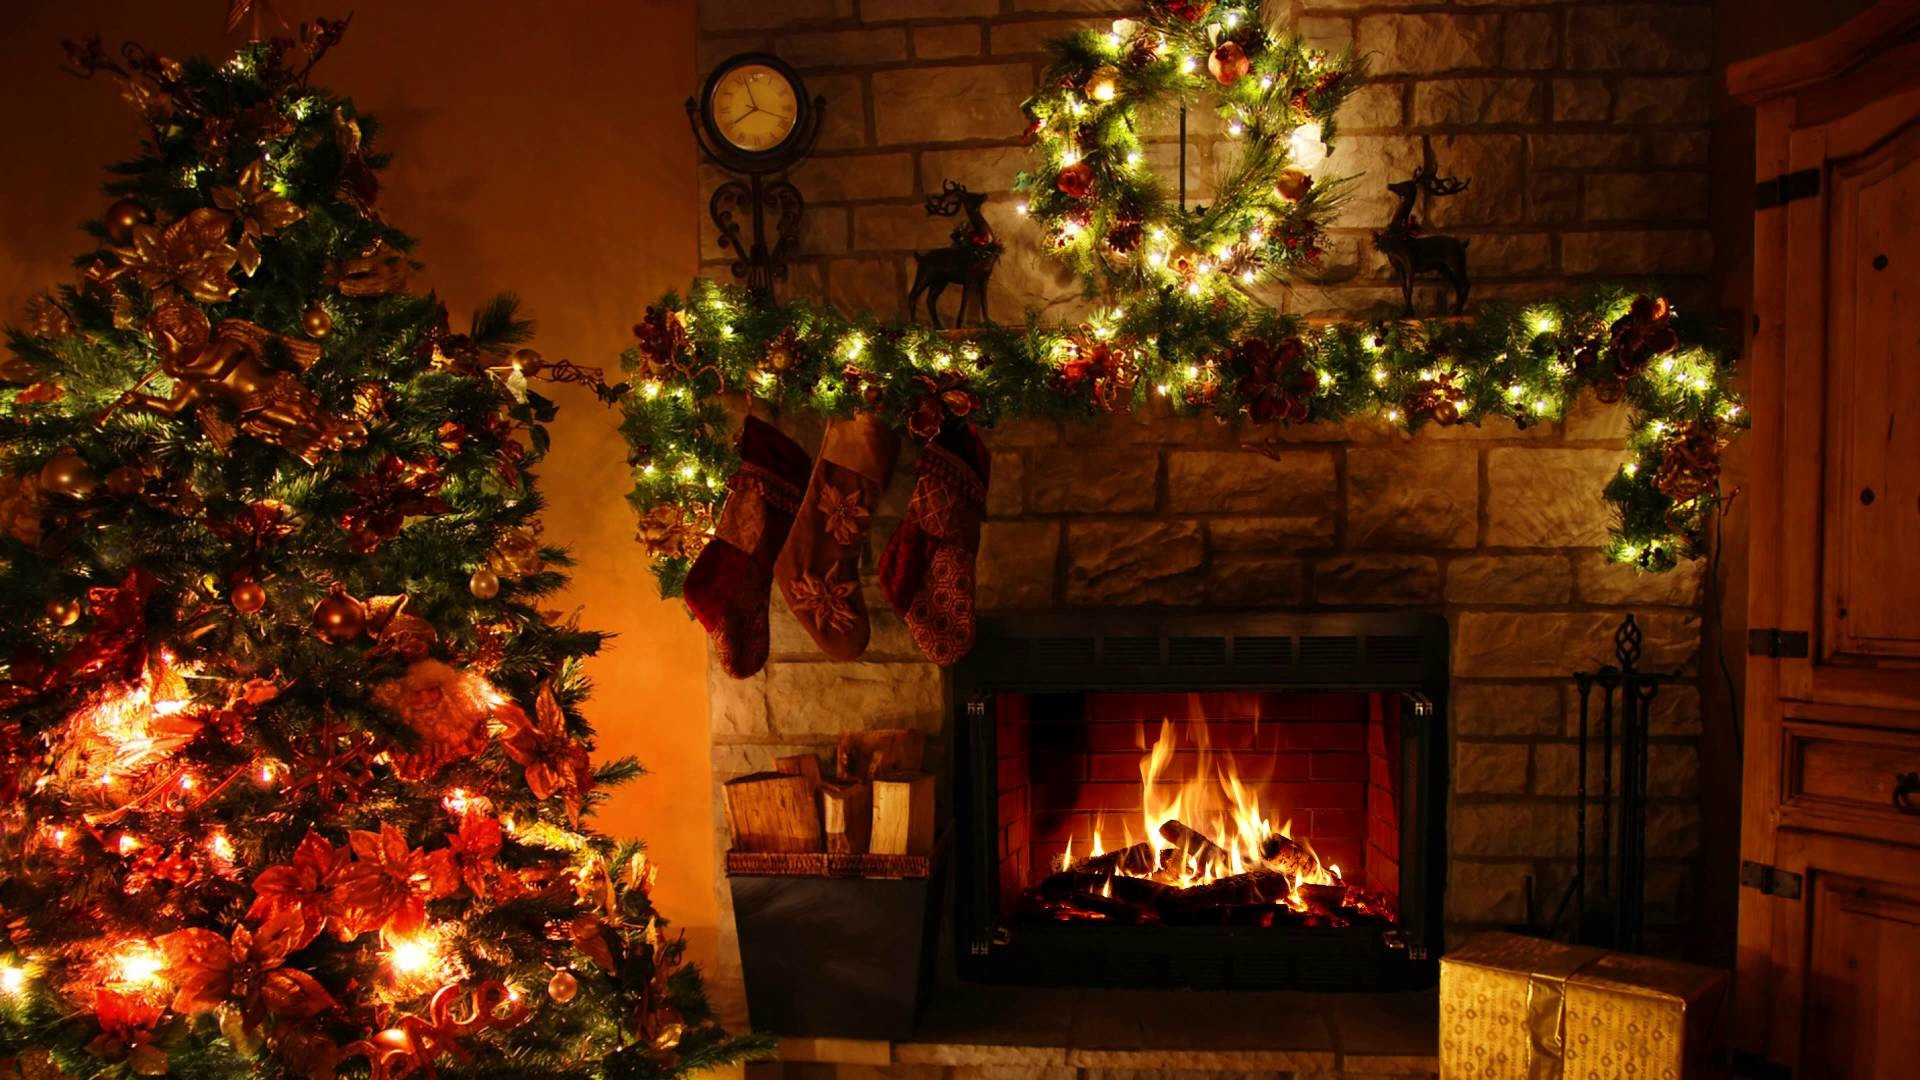 Fireplace Christmas Background  Christmas Fireplace Background ·① WallpaperTag